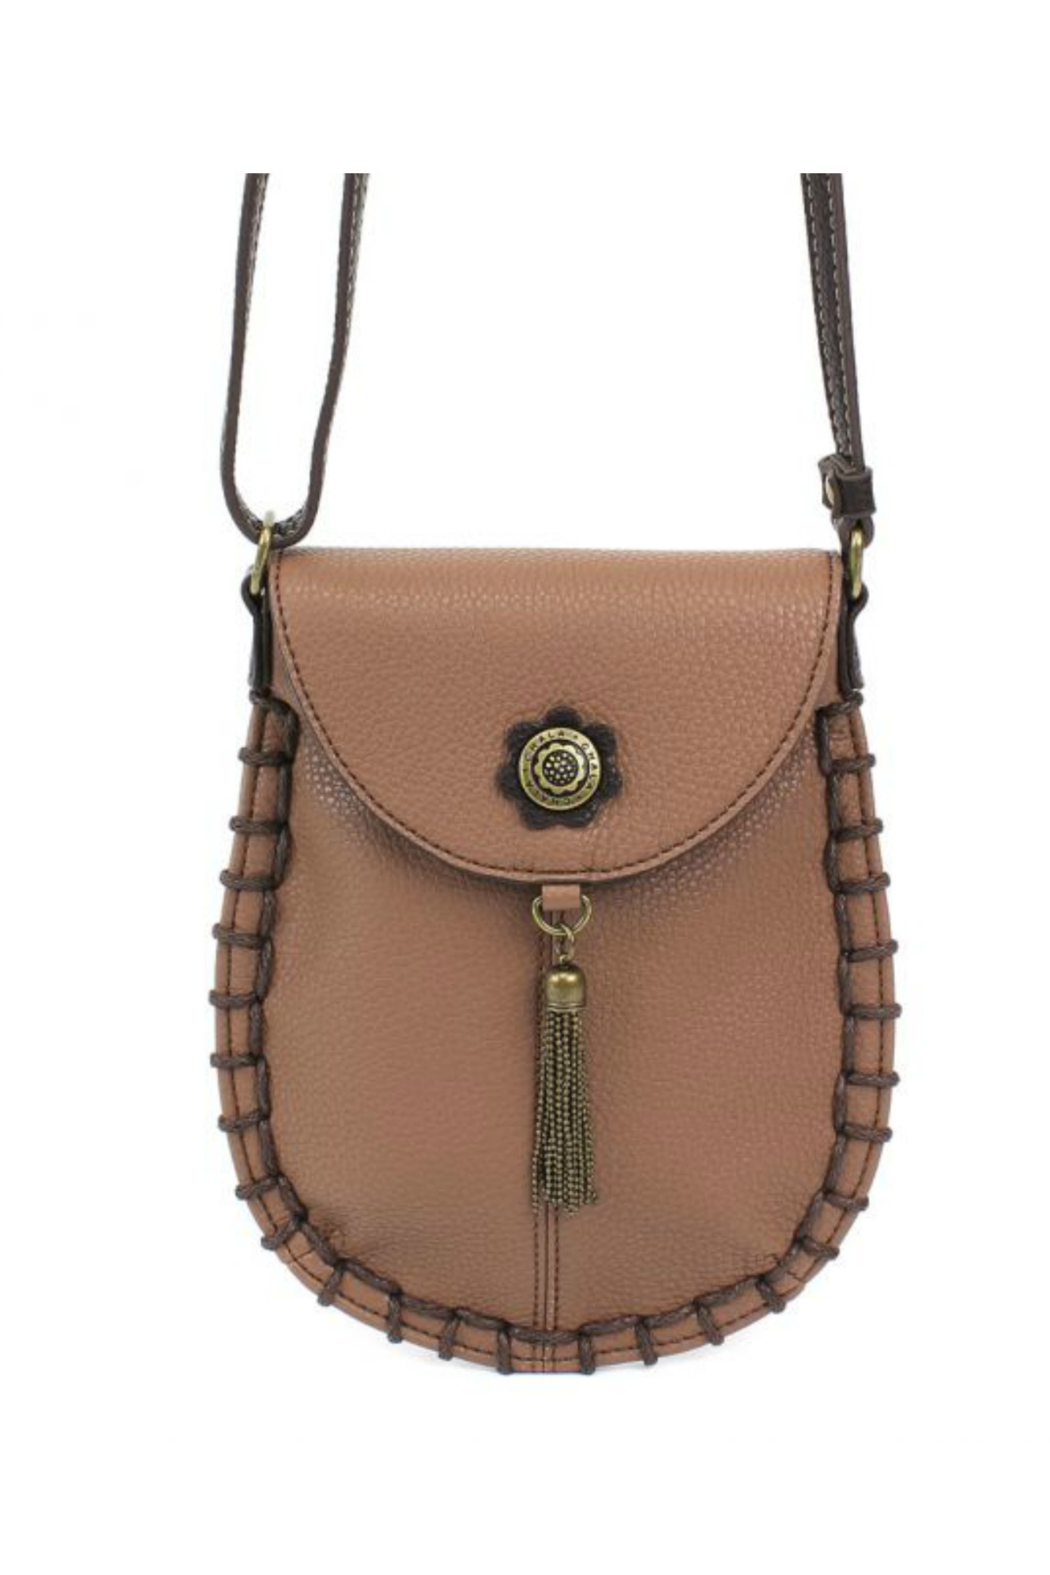 Chala Handbags Cellphone Crossbody Front Cropped Image